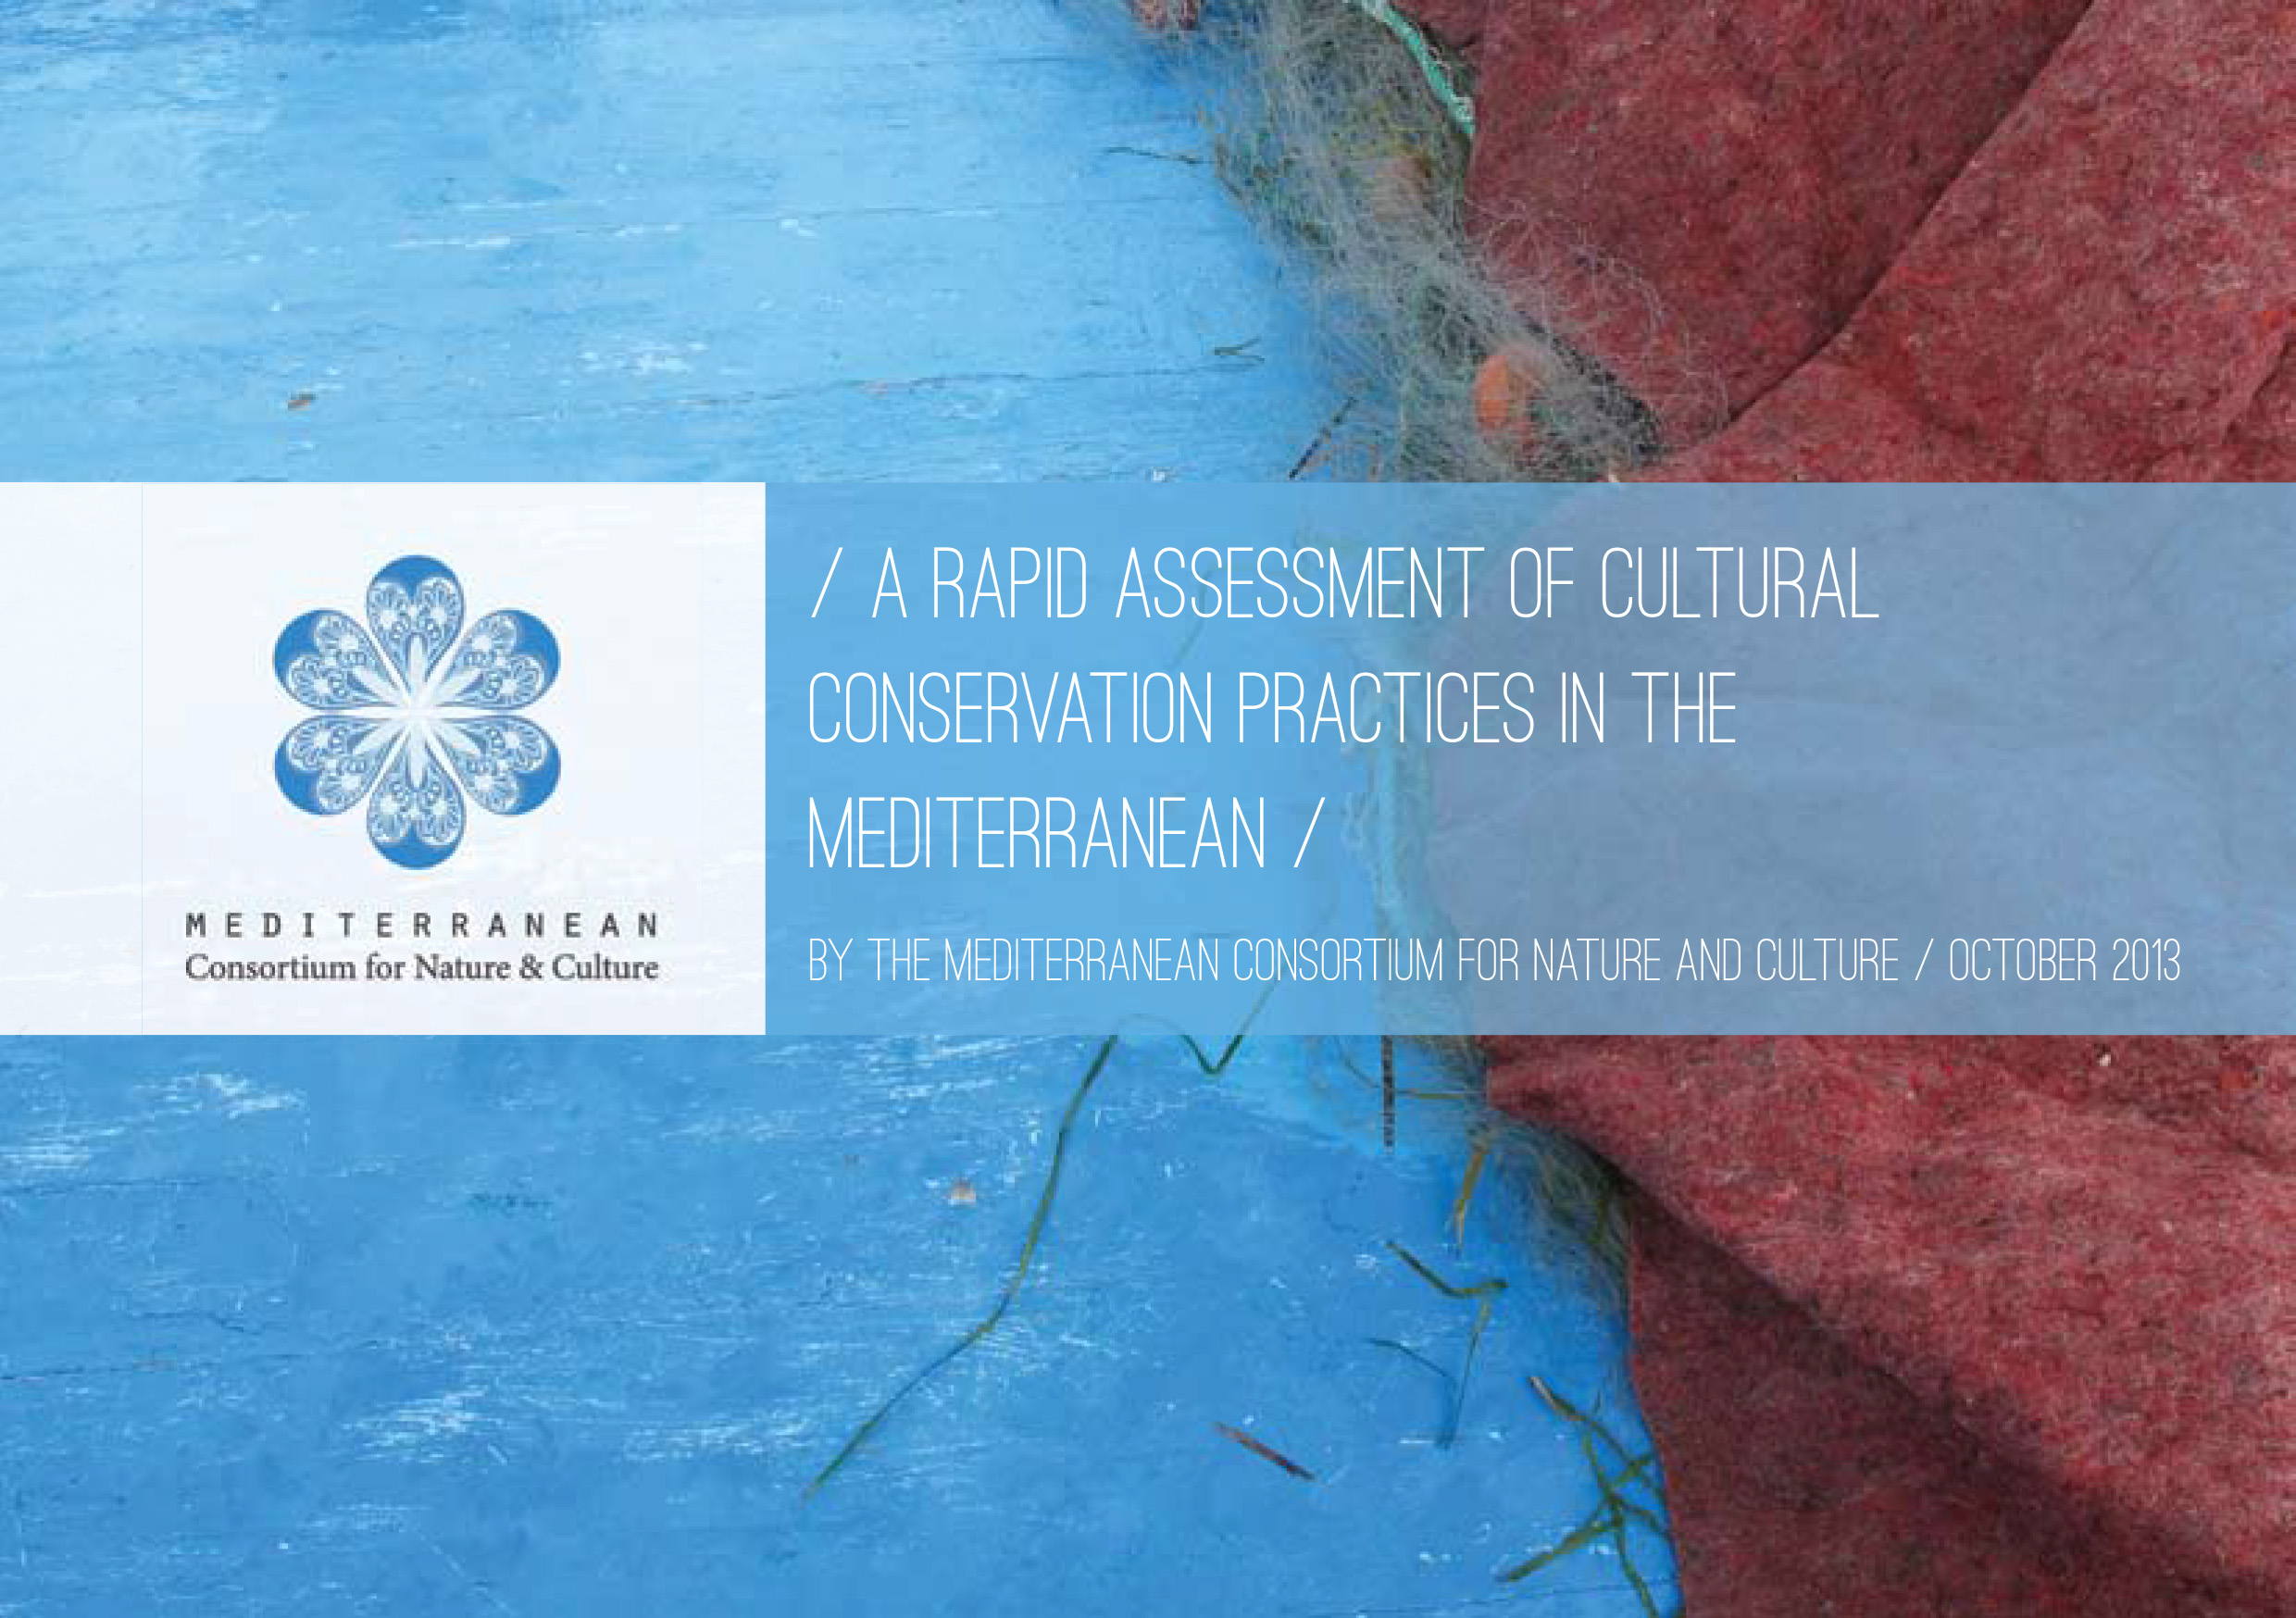 Rapid Assessment of Cultural Conservation Practices in the Mediterranean